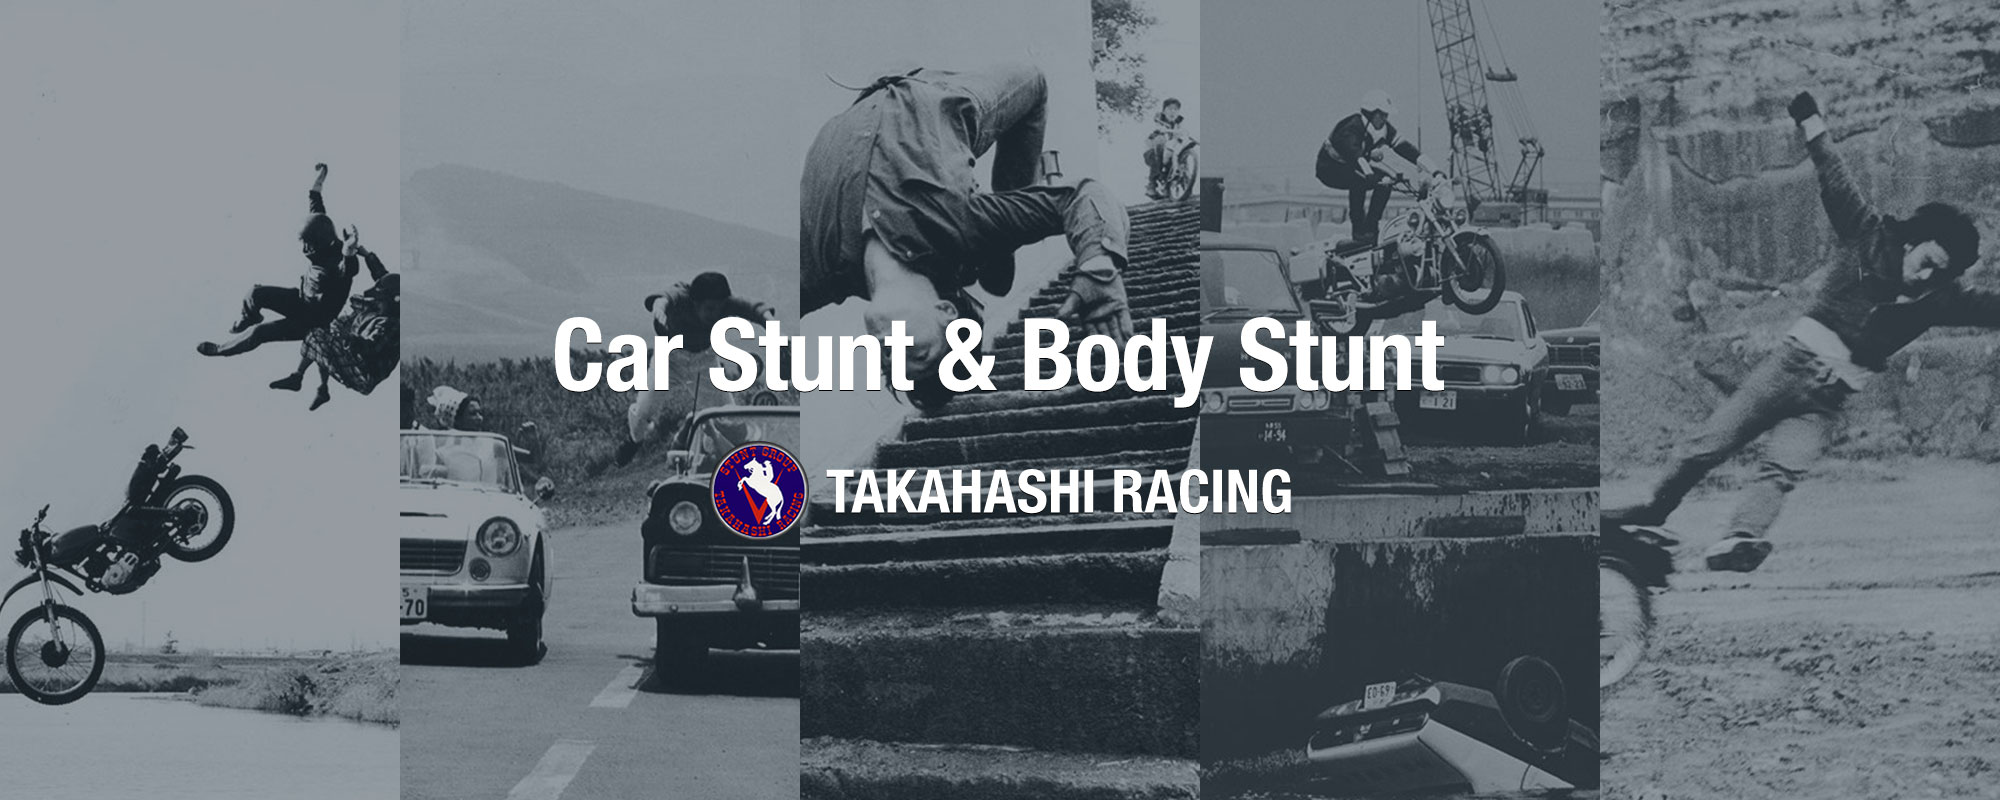 Car Stunt & Body Stunt / TAKAHASHI RACING